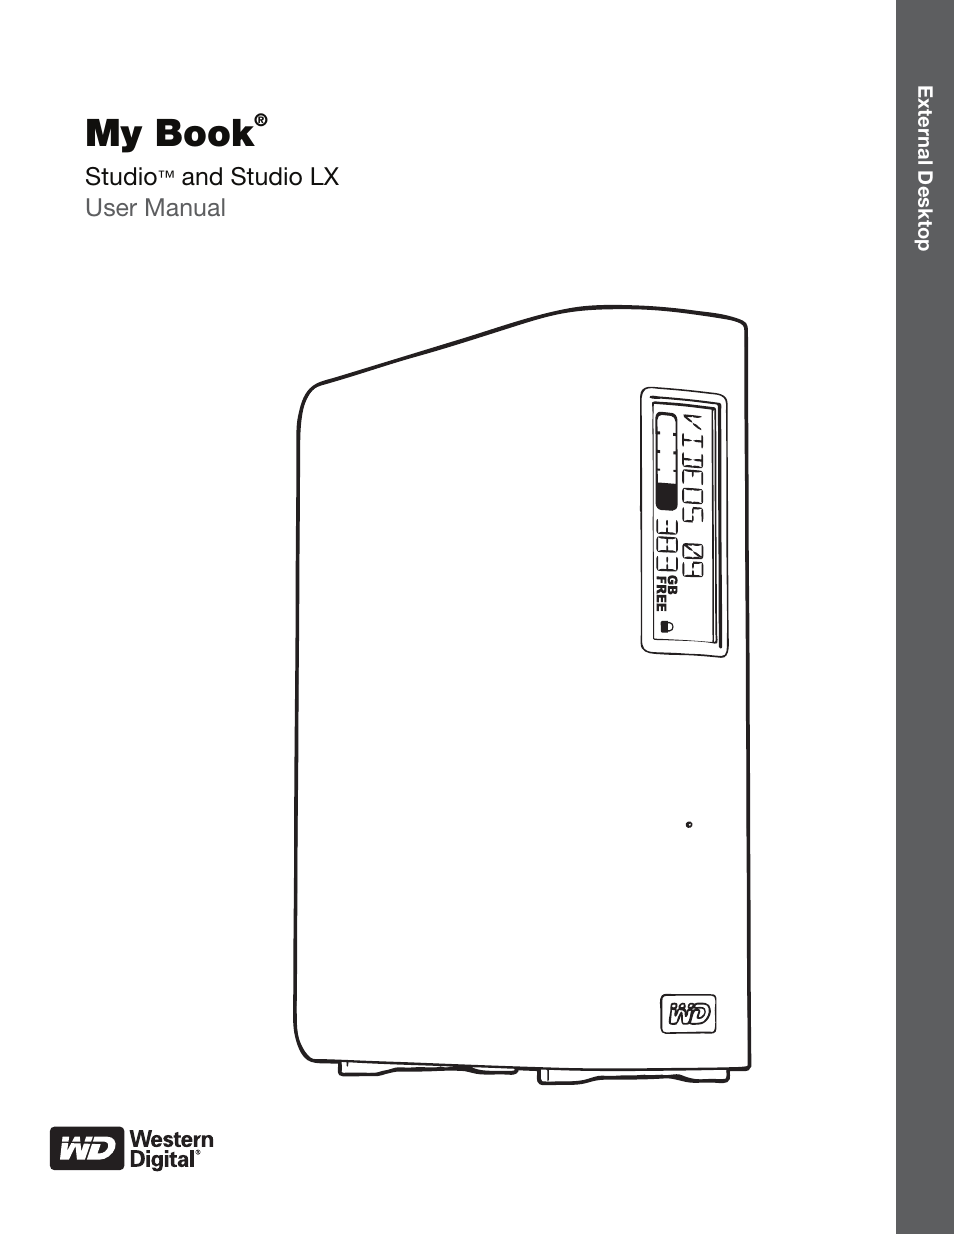 western digital my book studio studio lx user manual user manual rh manualsdir com my book world edition user manual wd my book user manual